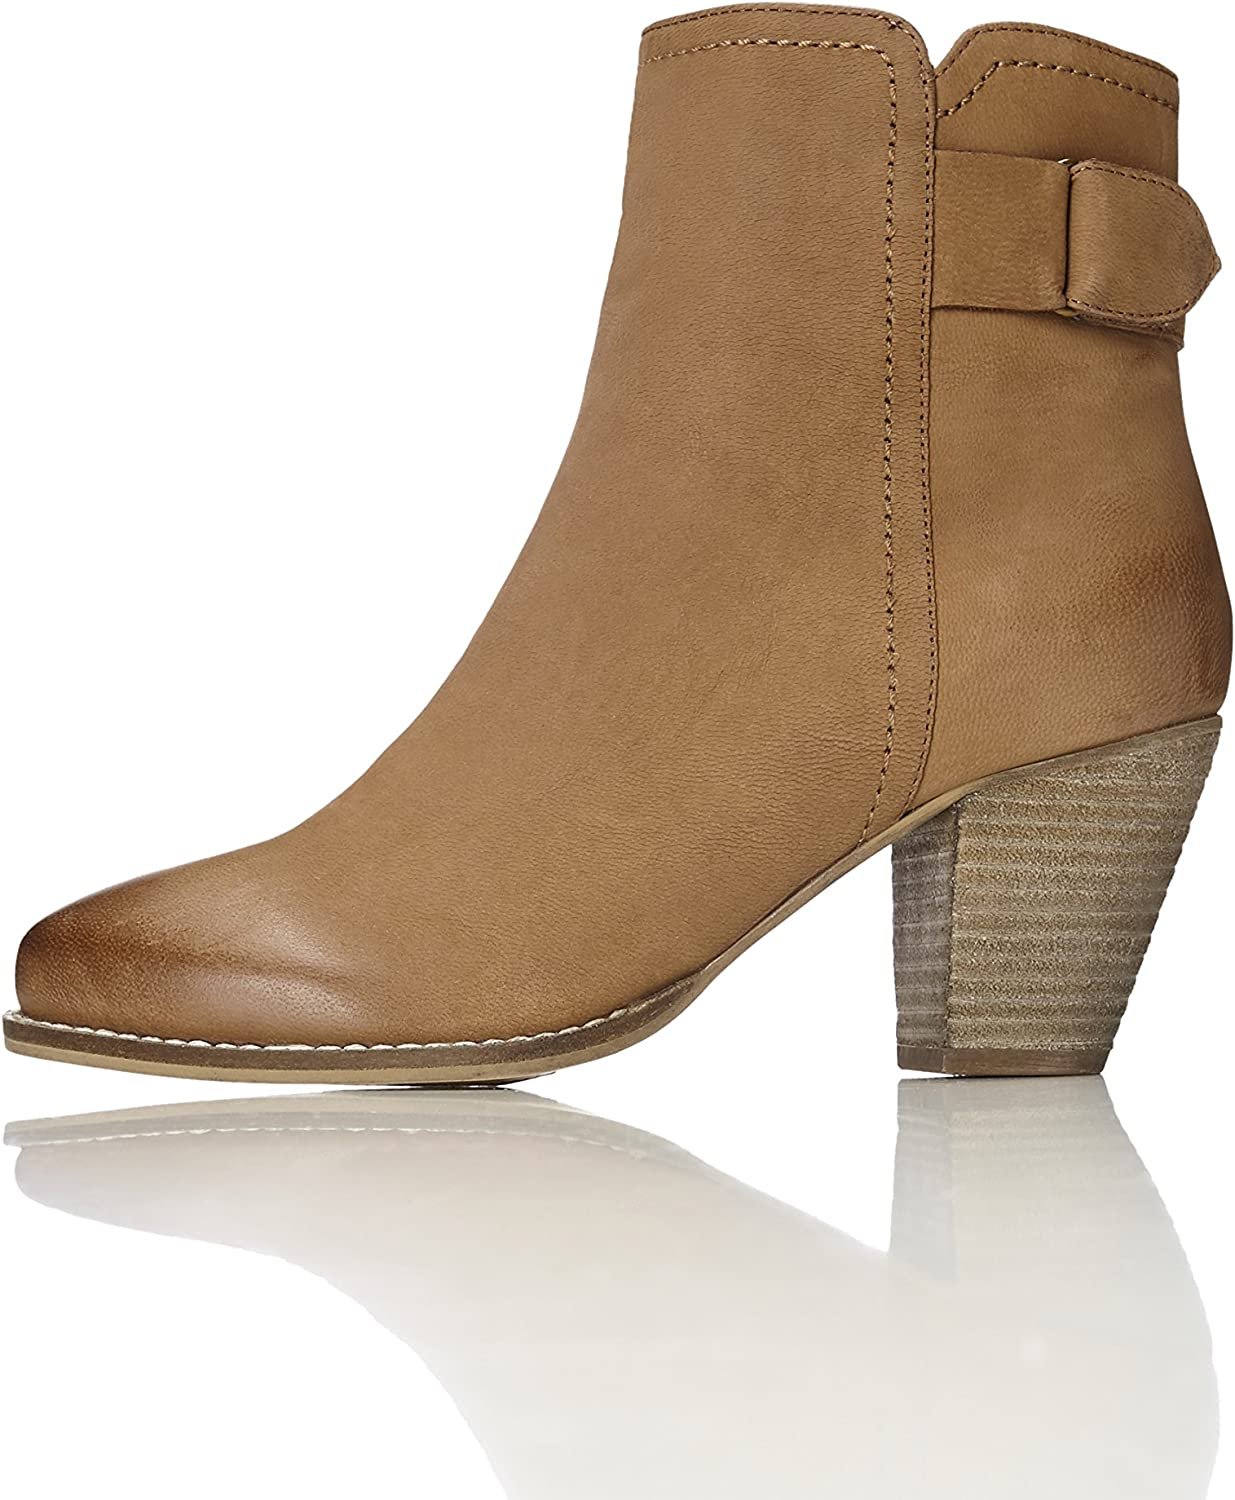 Max 75% OFF find. Women's Leather Boots Ankle free shipping